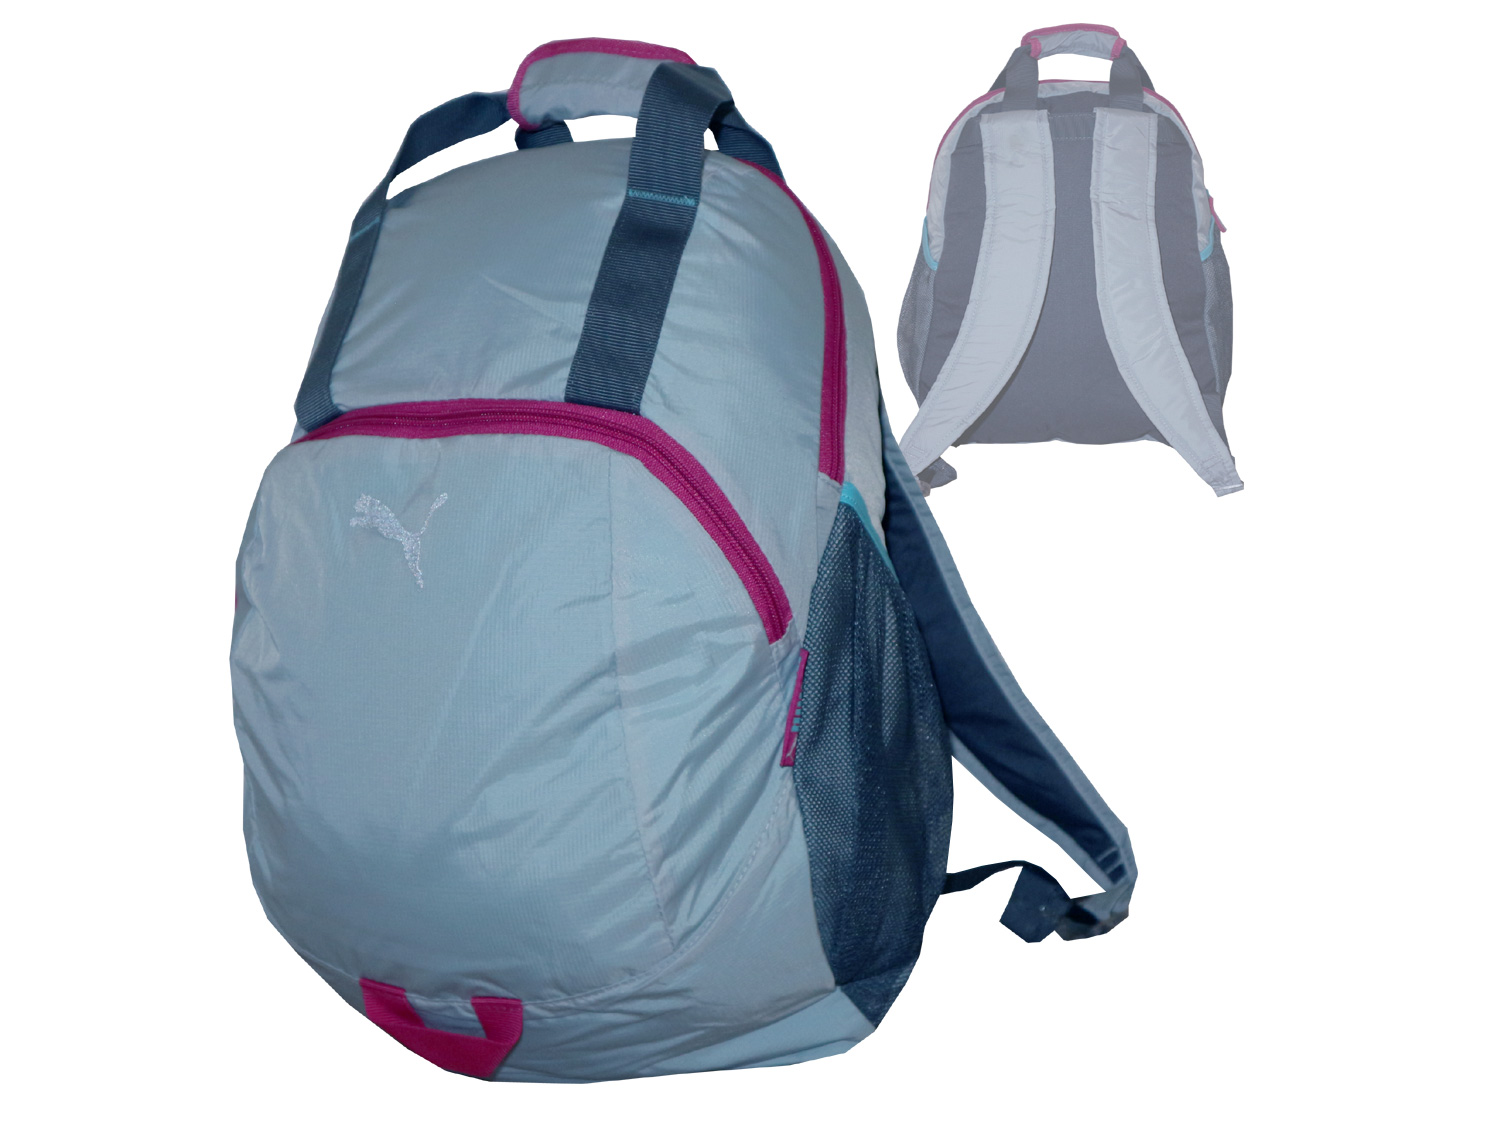 Puma Fitness Backpack / Rucksack